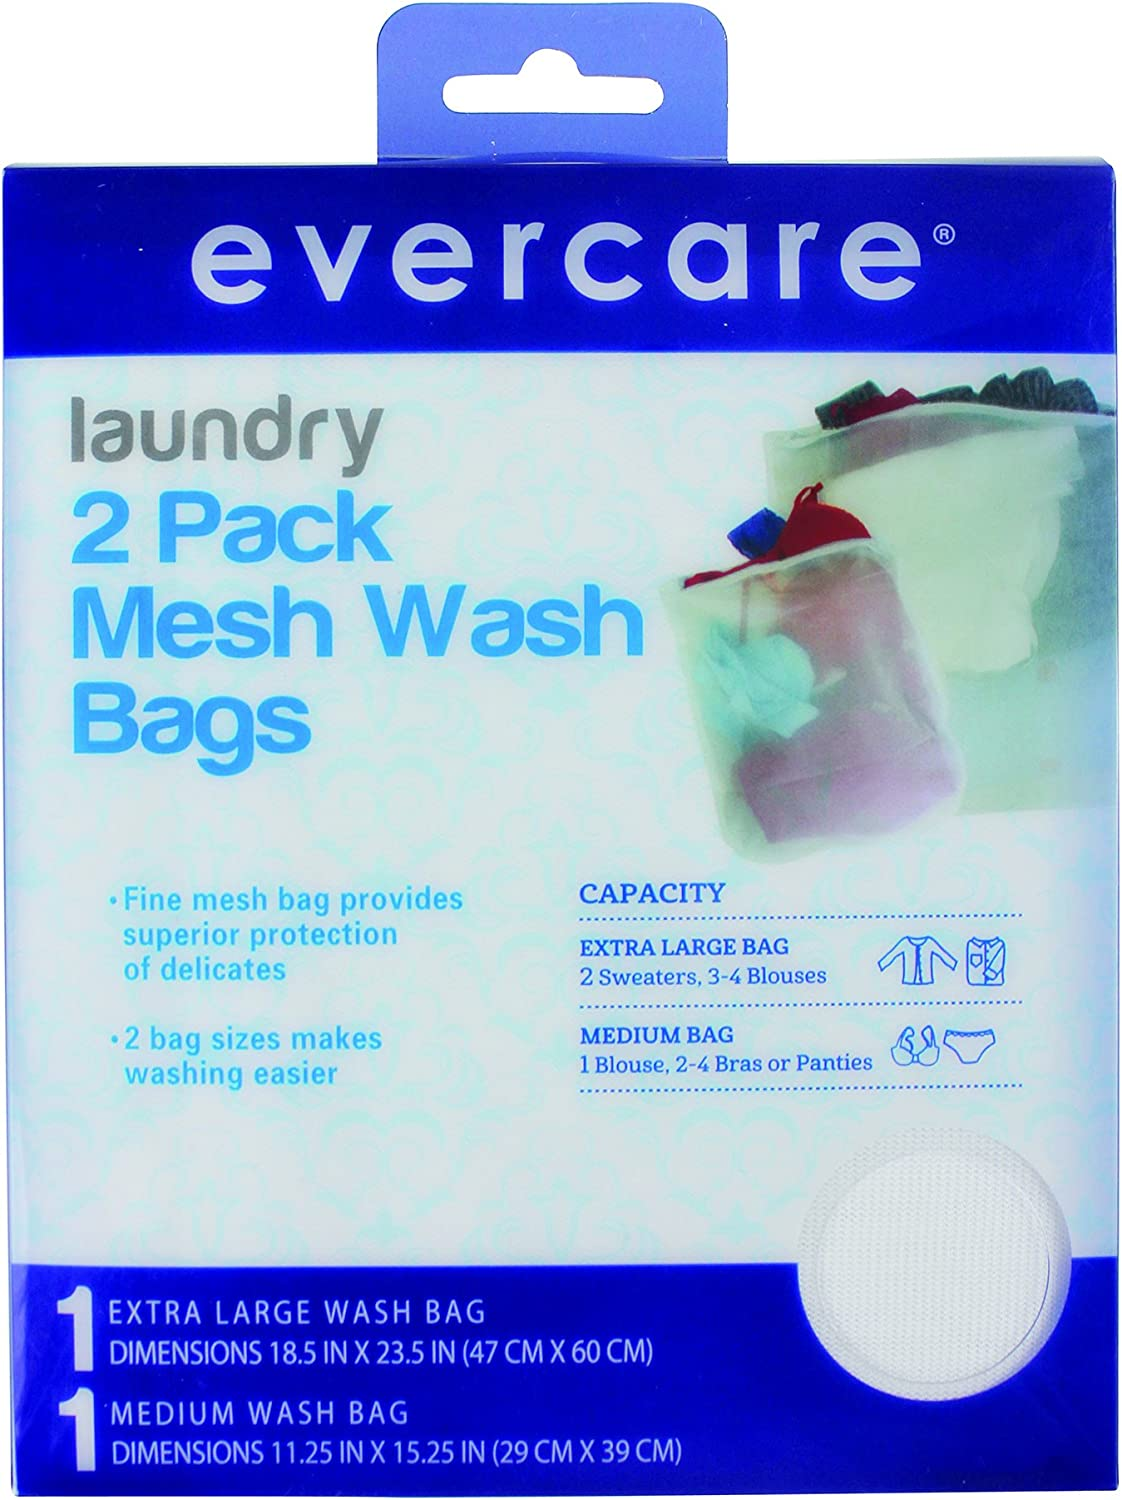 EverCare 617725 Laundry 2 pack Mesh Wash Bags superior protection of delicates two bag sizes